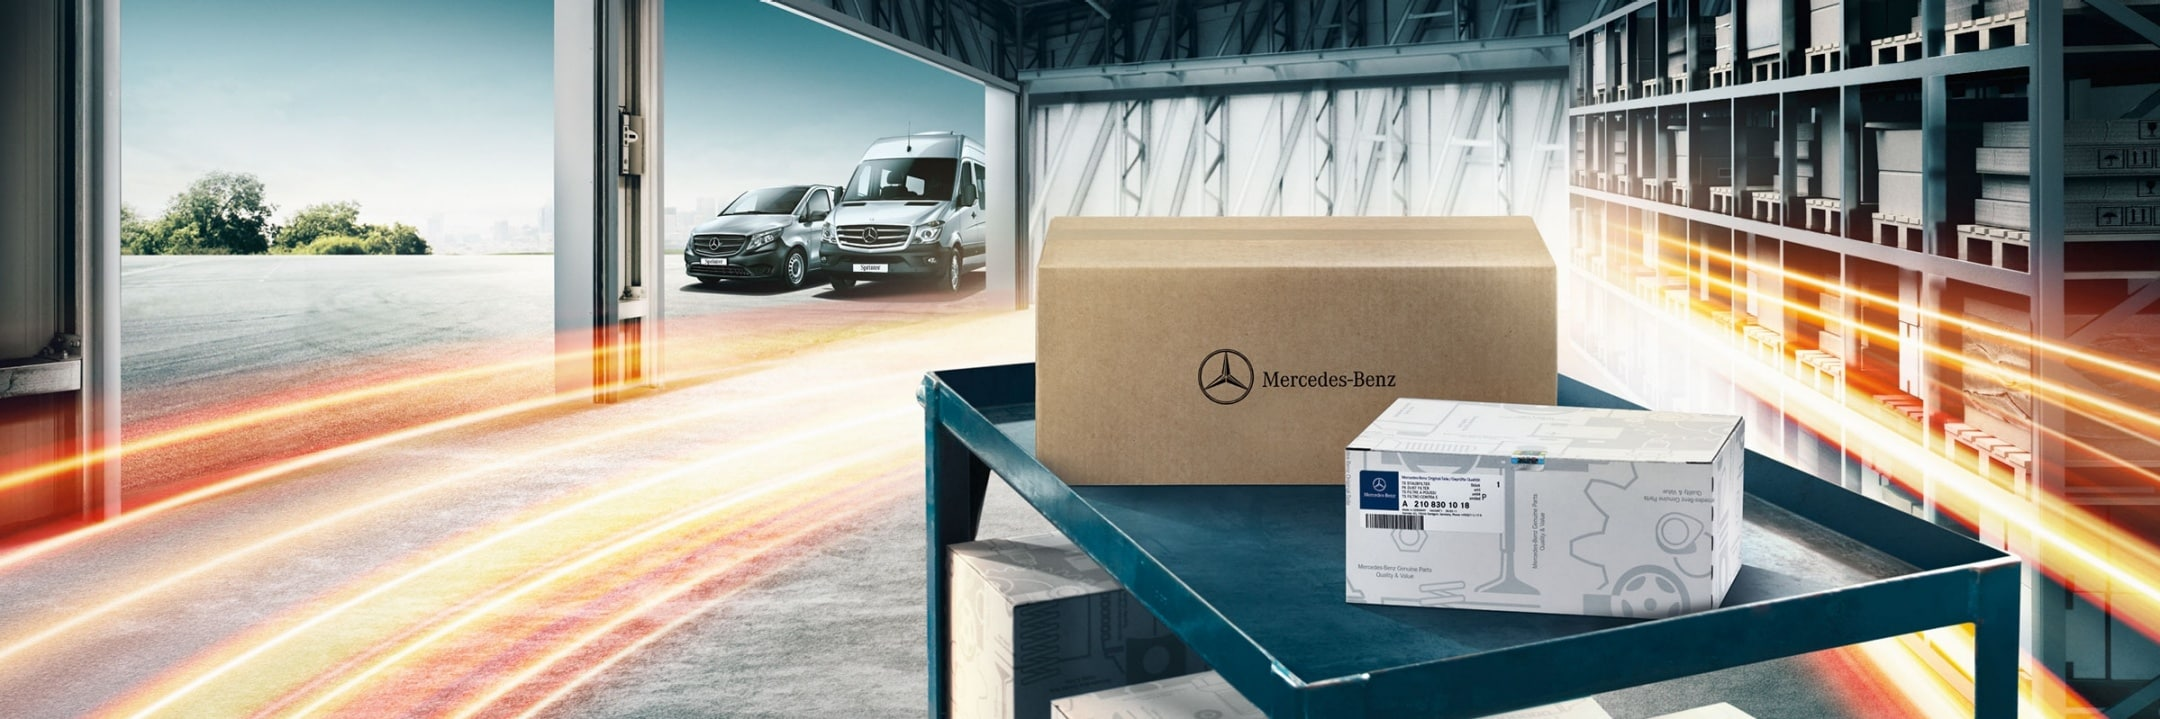 Mercedes-Benz GenuineParts.